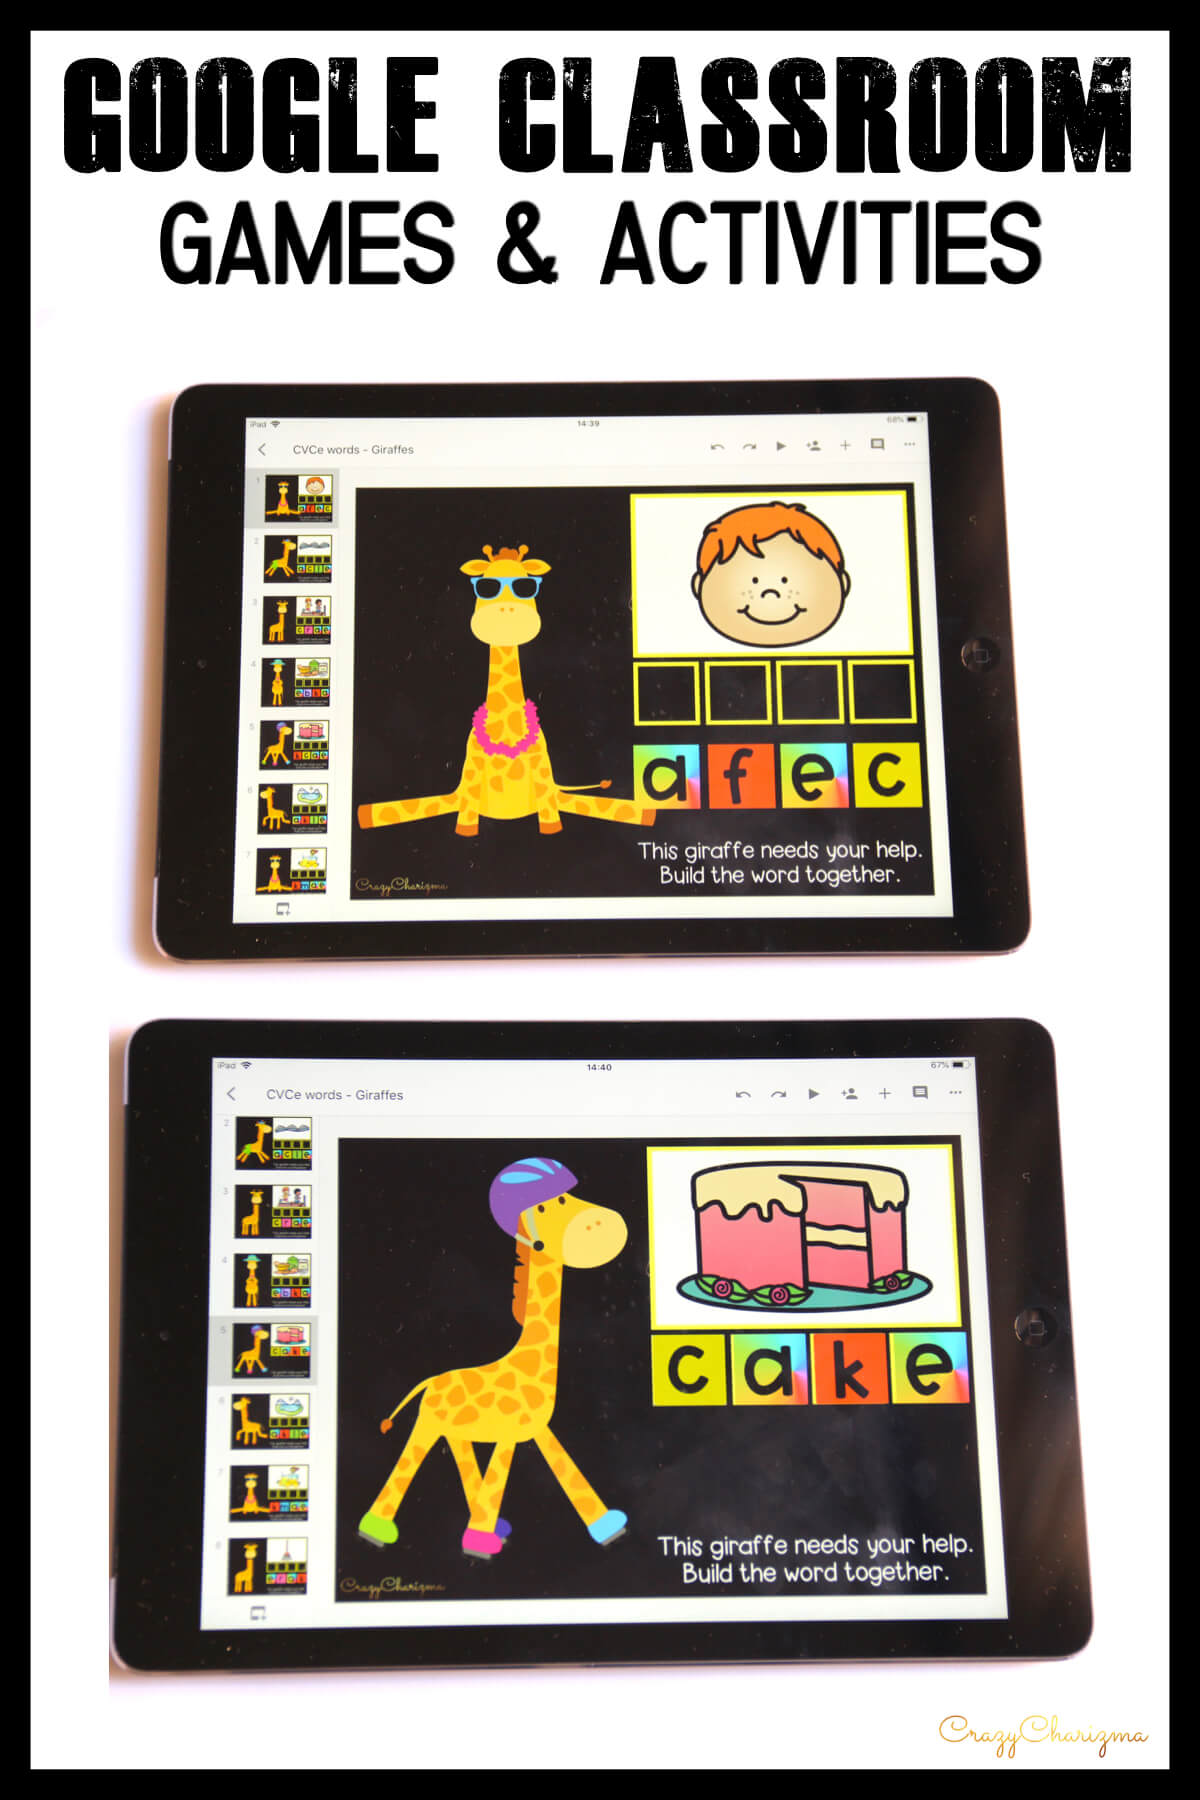 Google Classroom Activities for Kindergarten | CVCe words: Looking for quick activities for CVCe word work? How about giraffes? :) Kids will build the words and have images as visual help!